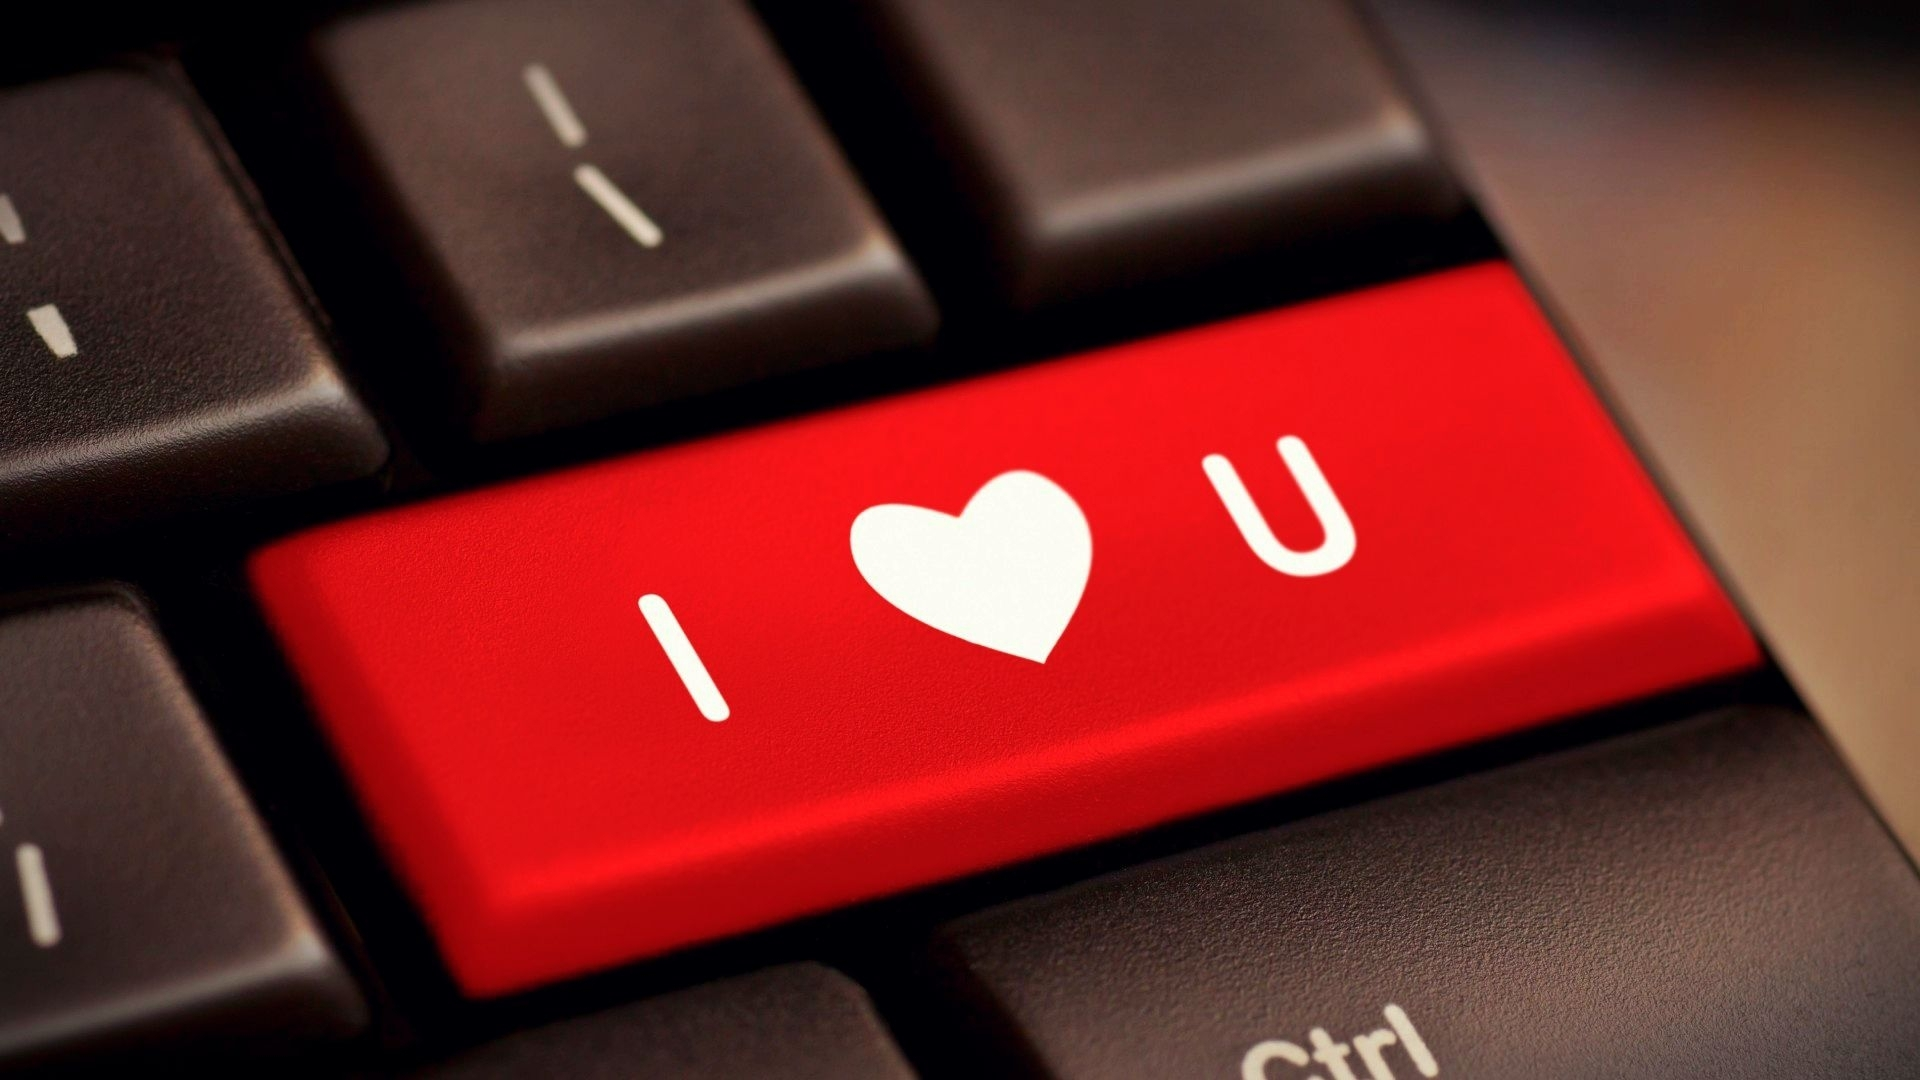 backgrounds i love u image cave on you wallpapers high resolution of